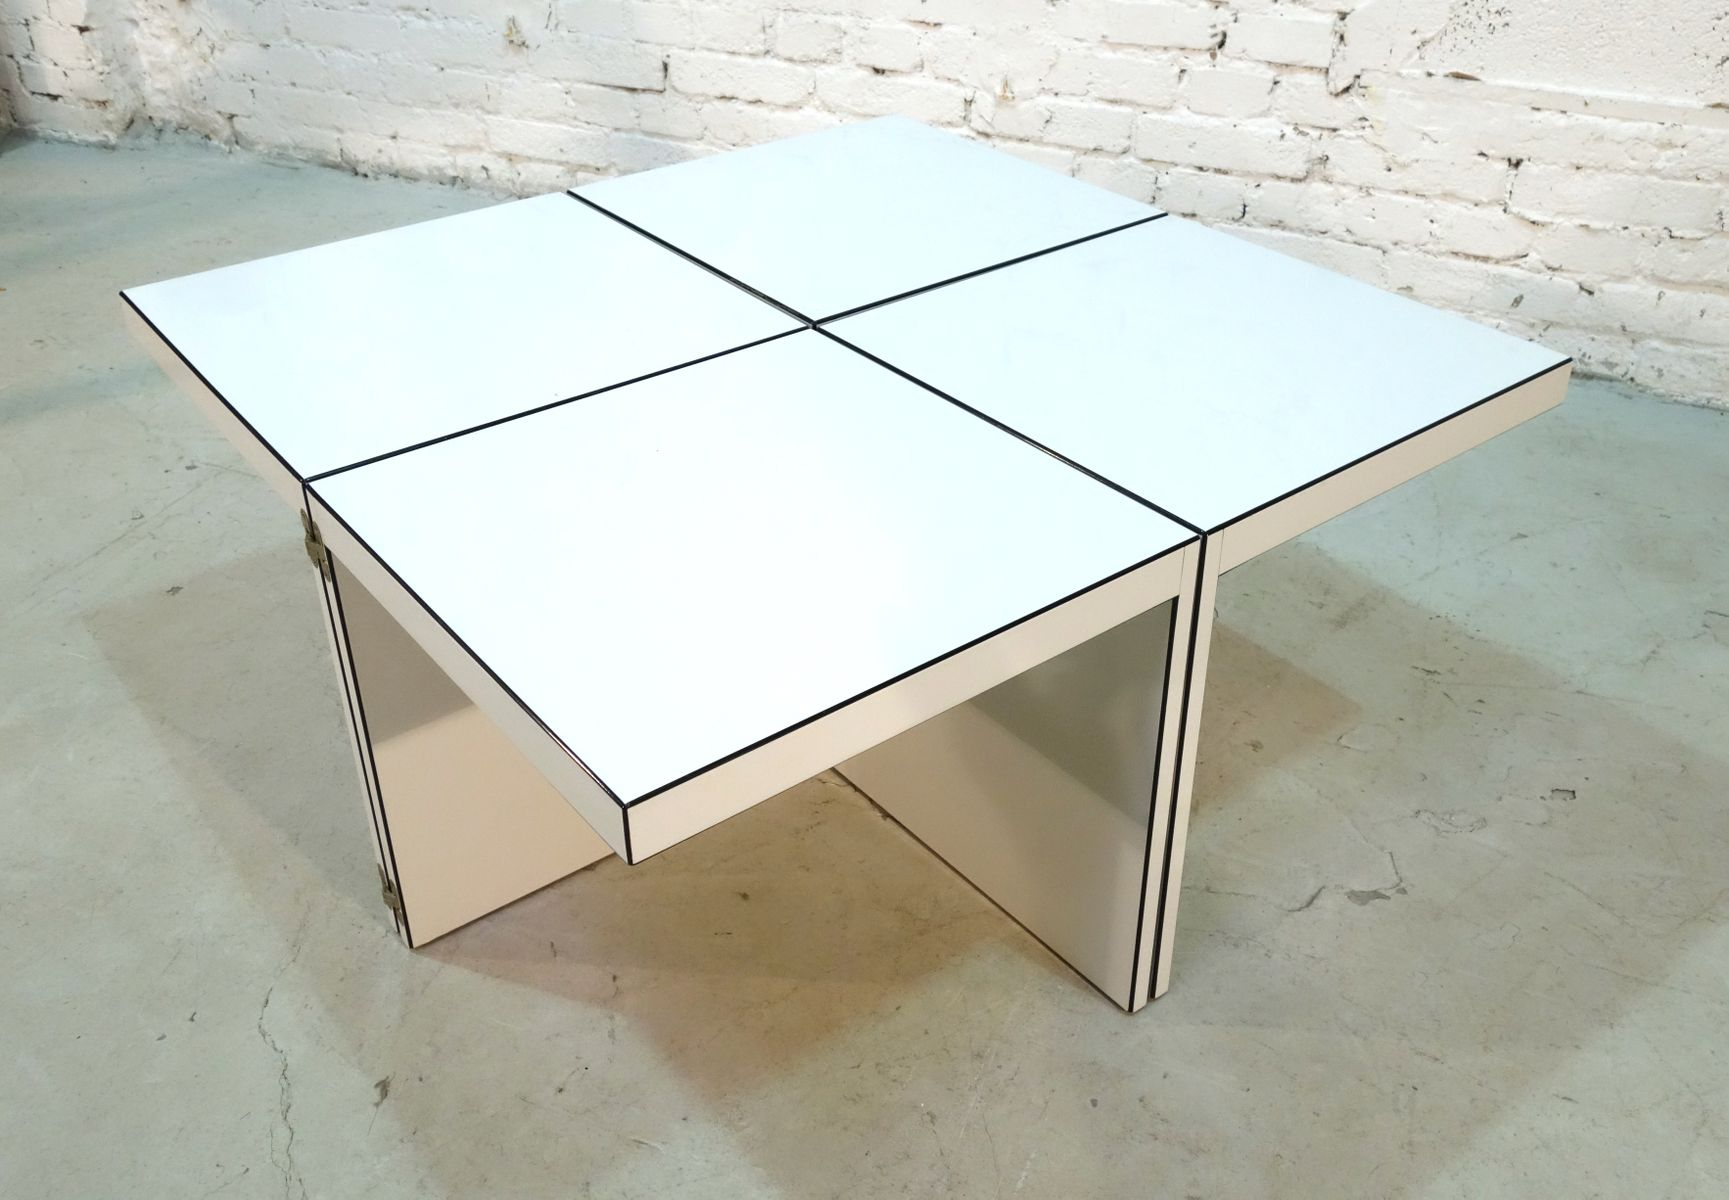 domino modular side table by jan wichers and alexander blomberg for rosenthal einrichtung 1979 2 Top Result 50 Best Of Gold and Glass Coffee Table Image 2017 Ksh4